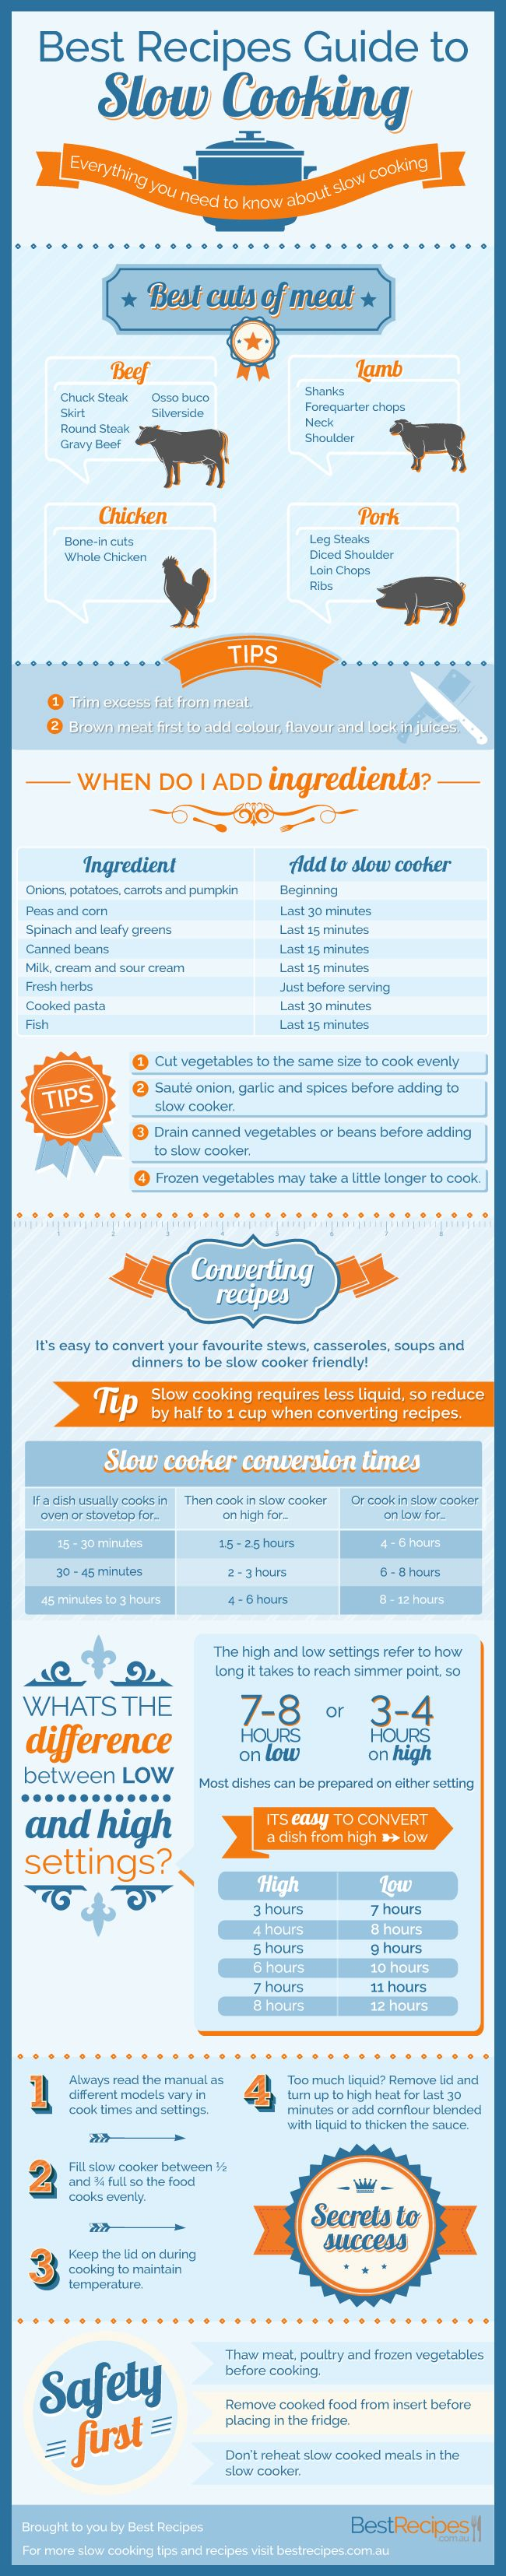 5 Favorite Slow Cooker Cooking Recipe Infographic Perfect for Weight Watchers - https://simple-nourished-living.com/2016/08/slow-cooker-guide-infographics-meals-recipes-tips/